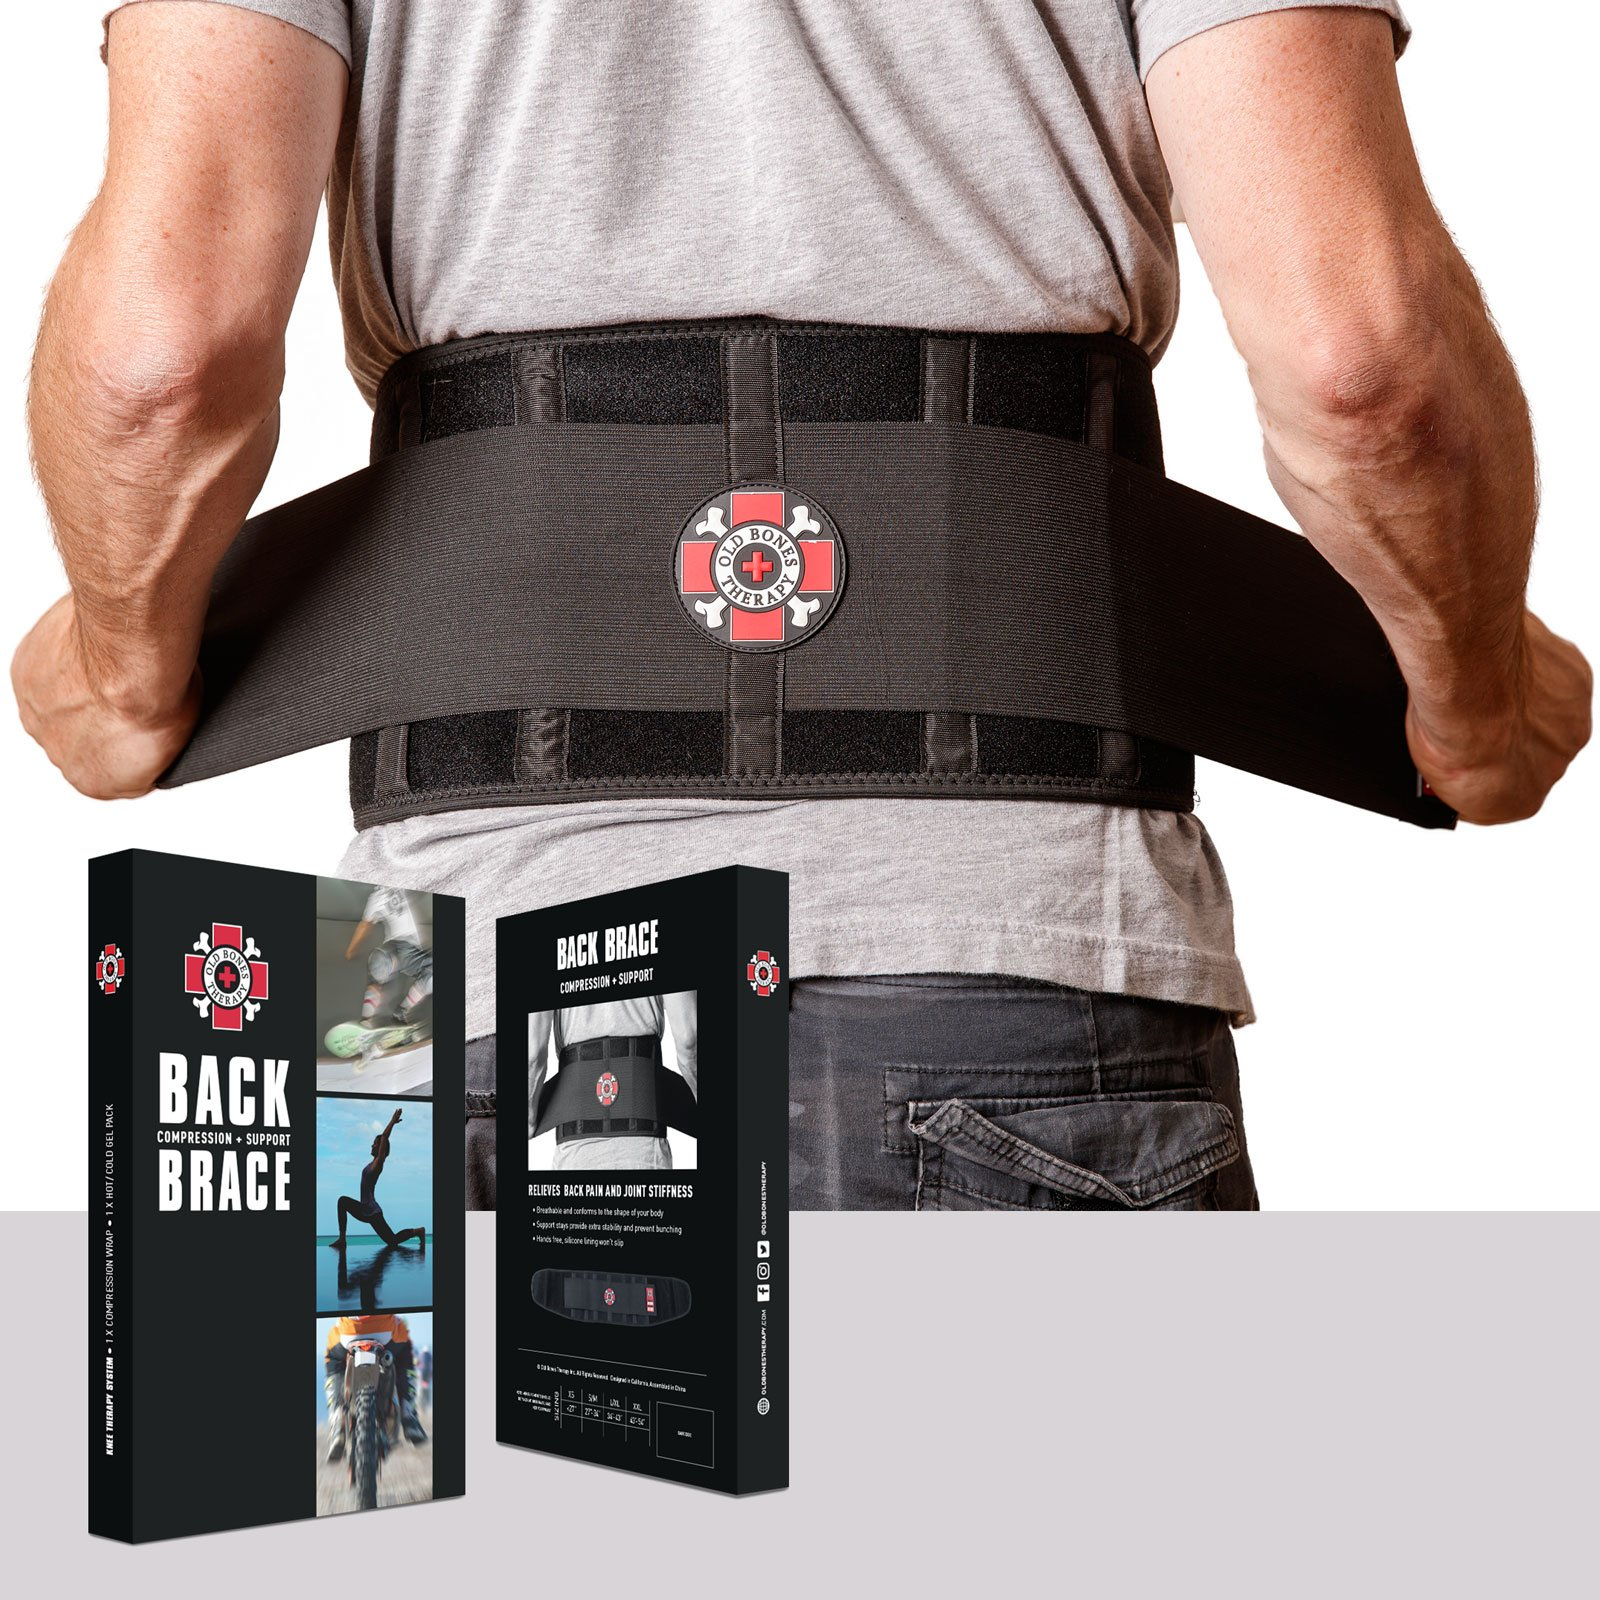 Old Bones Therapy Back Brace - Immediate Pain Relief for Lower Back Pain, Sciatica, Scoliosis or Herniated Disc - Adjustable Back Support Belt with Lumbar Support for Men & Women - Size L/XL